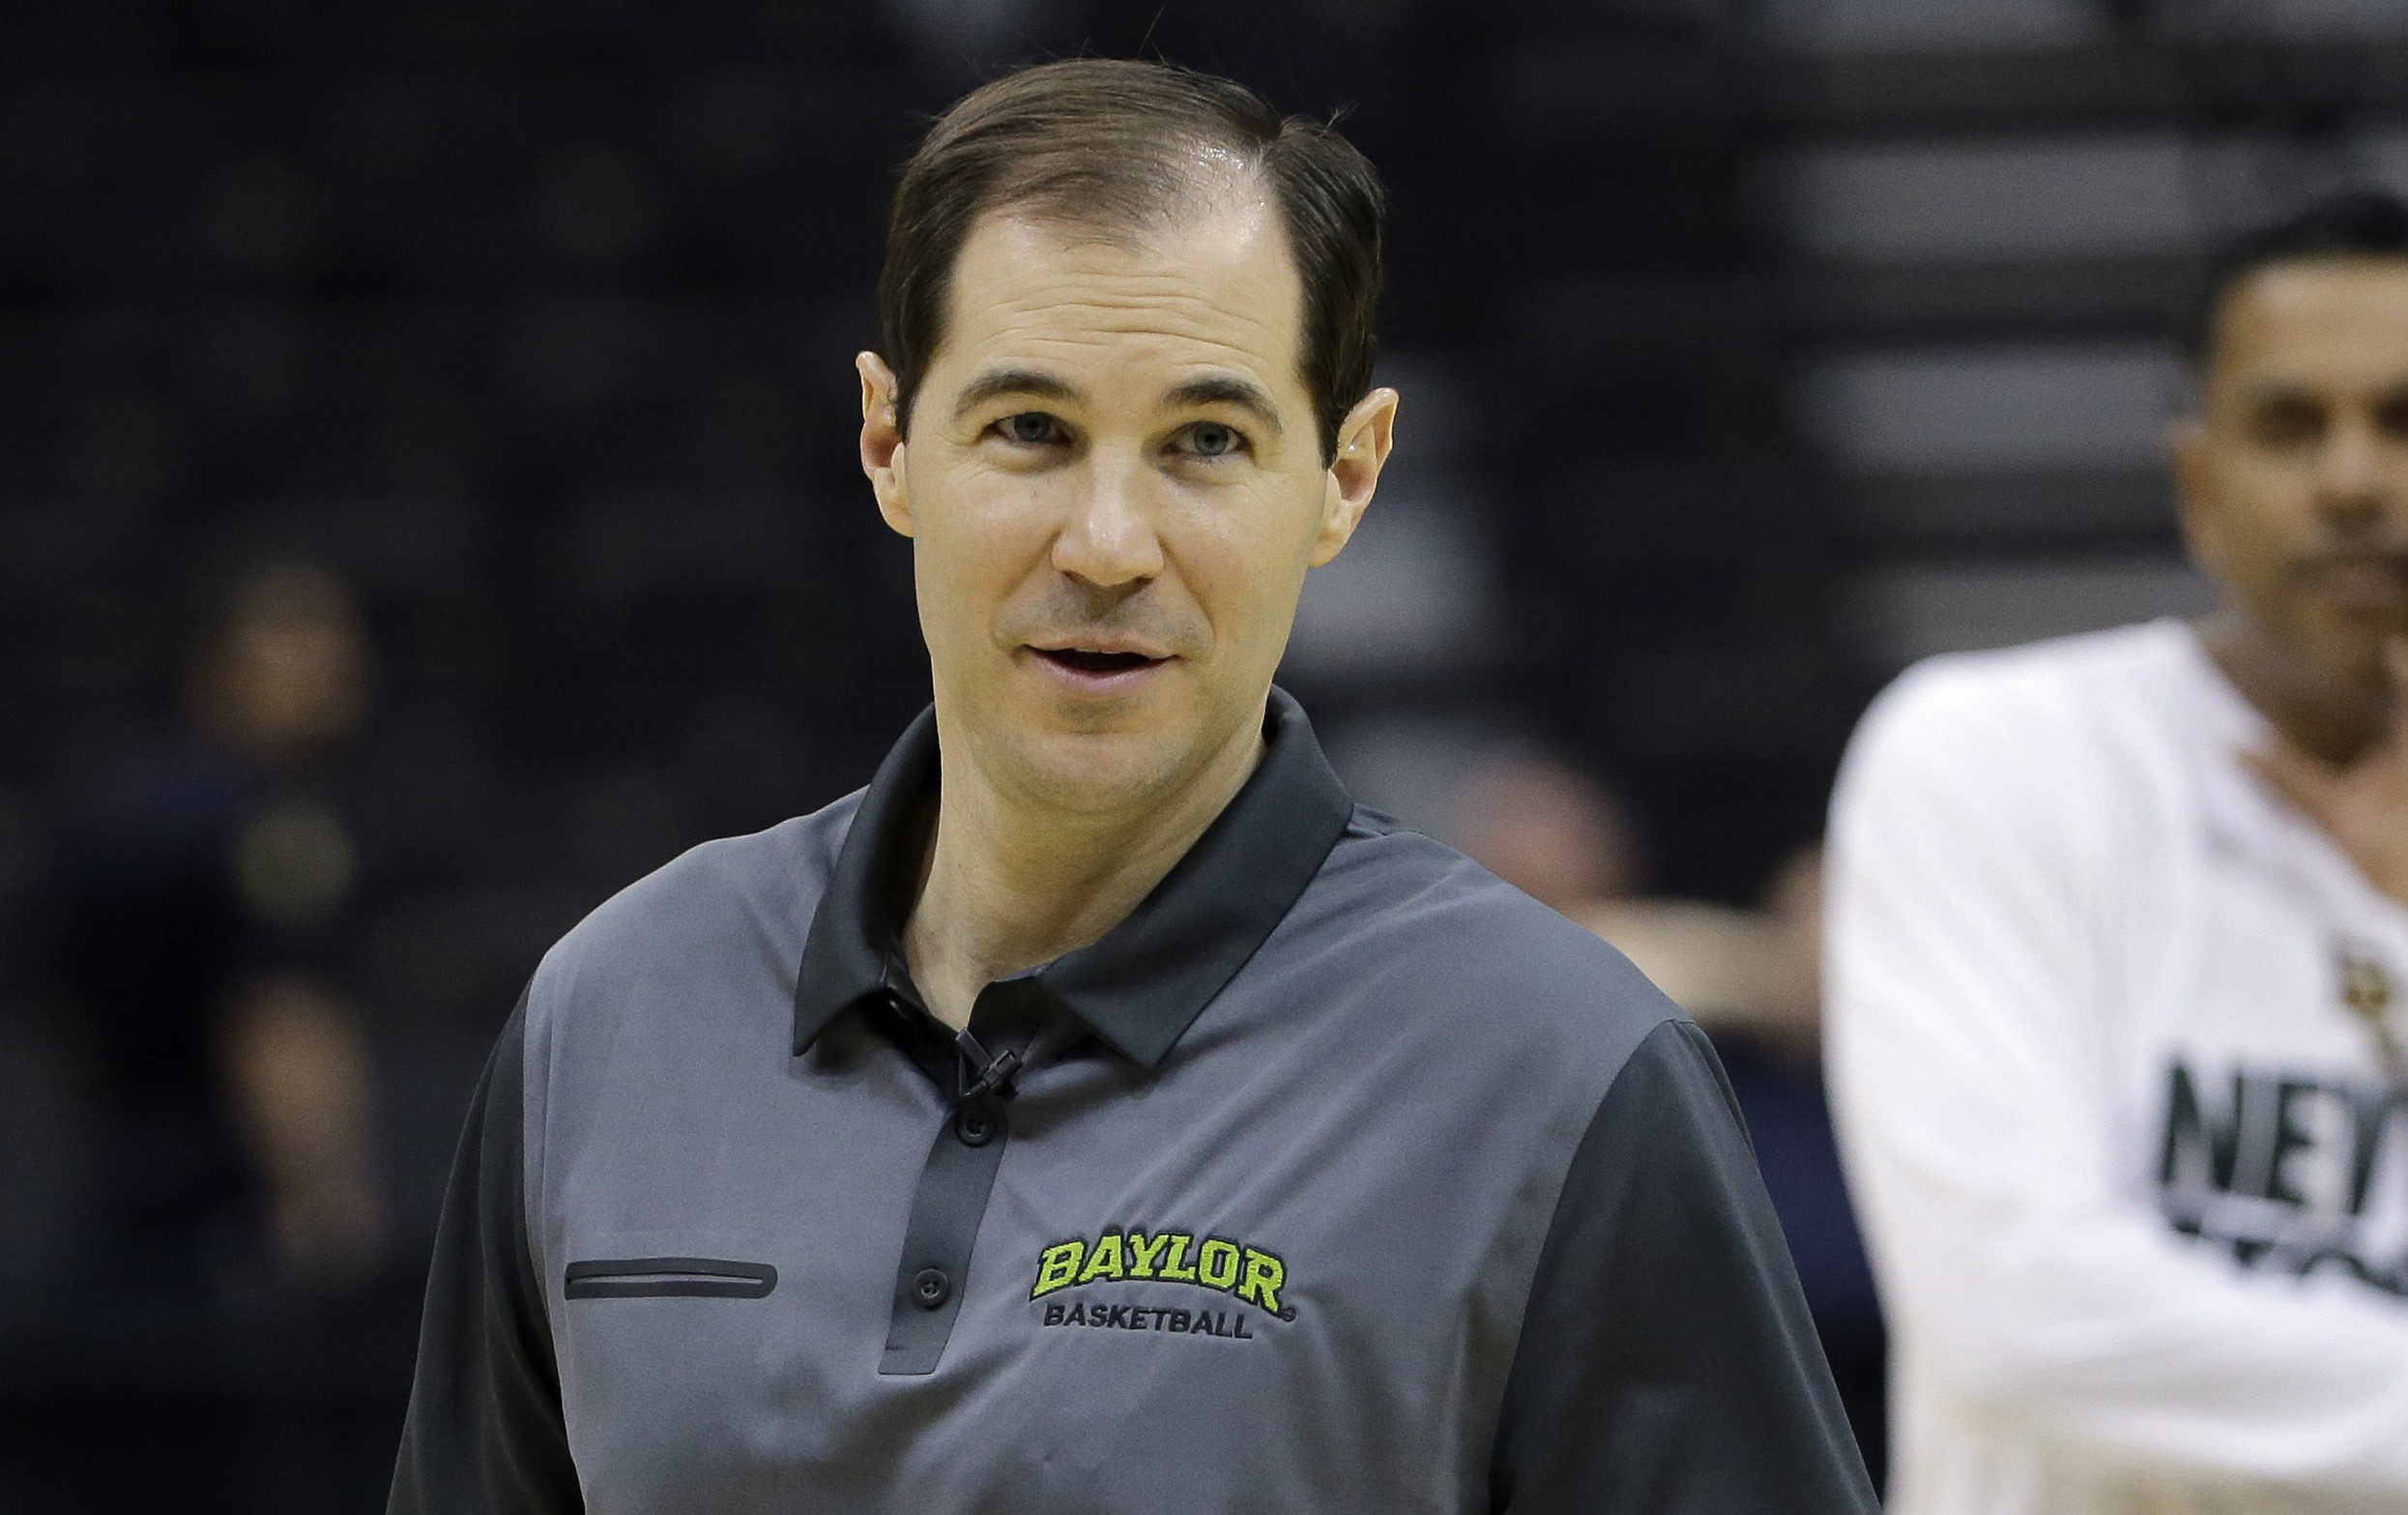 Baylor head coach Scott Drew smiles during practice at the NCAA college basketball tournament, Wednesday, March 18, 2015, in Jacksonville, Fla. Baylor plays Georgia State in the second round on Thursday. (AP Photo/Chris O'Meara)